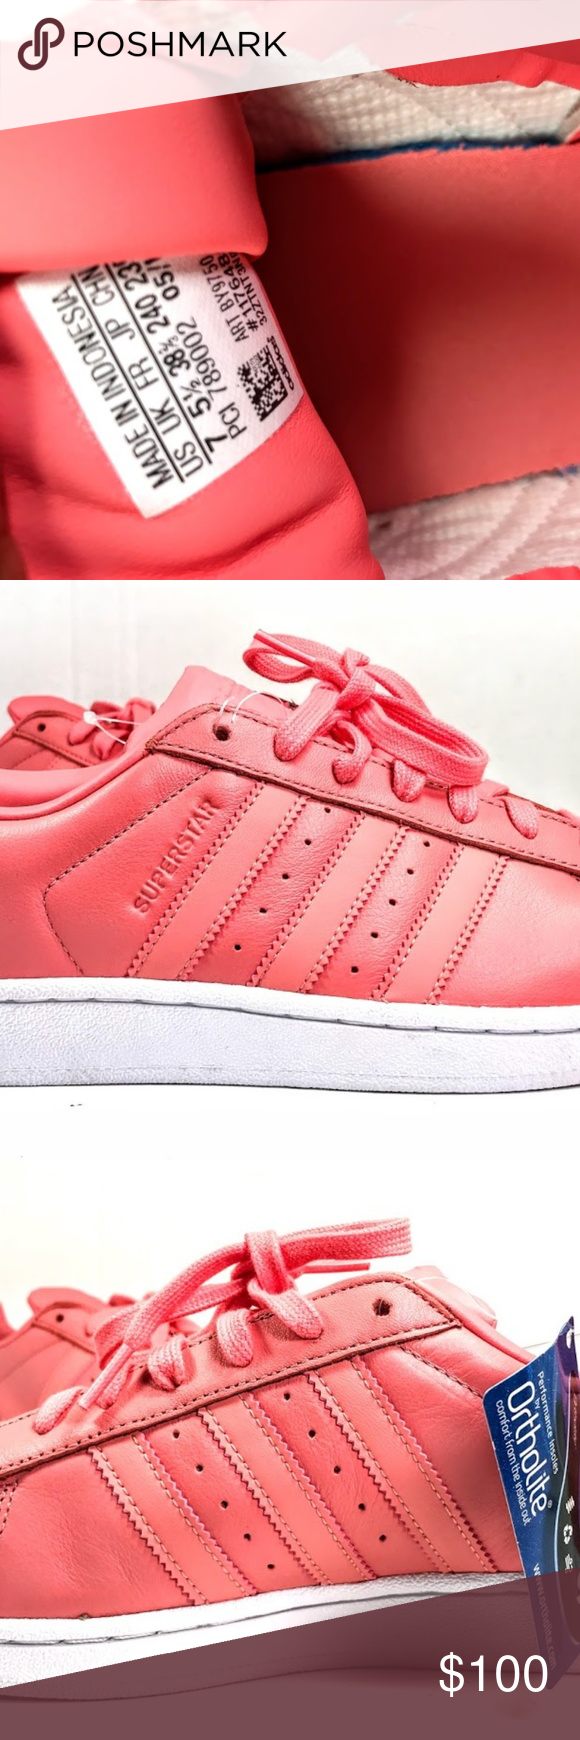 info for c650c bfd10 ADIDAS ORIGINALS SUPERSTAR metal toe rose pink 7 ADIDAS ORIGINALS SUPERSTAR  BY9750 METAL TOE ROSES WOMENS